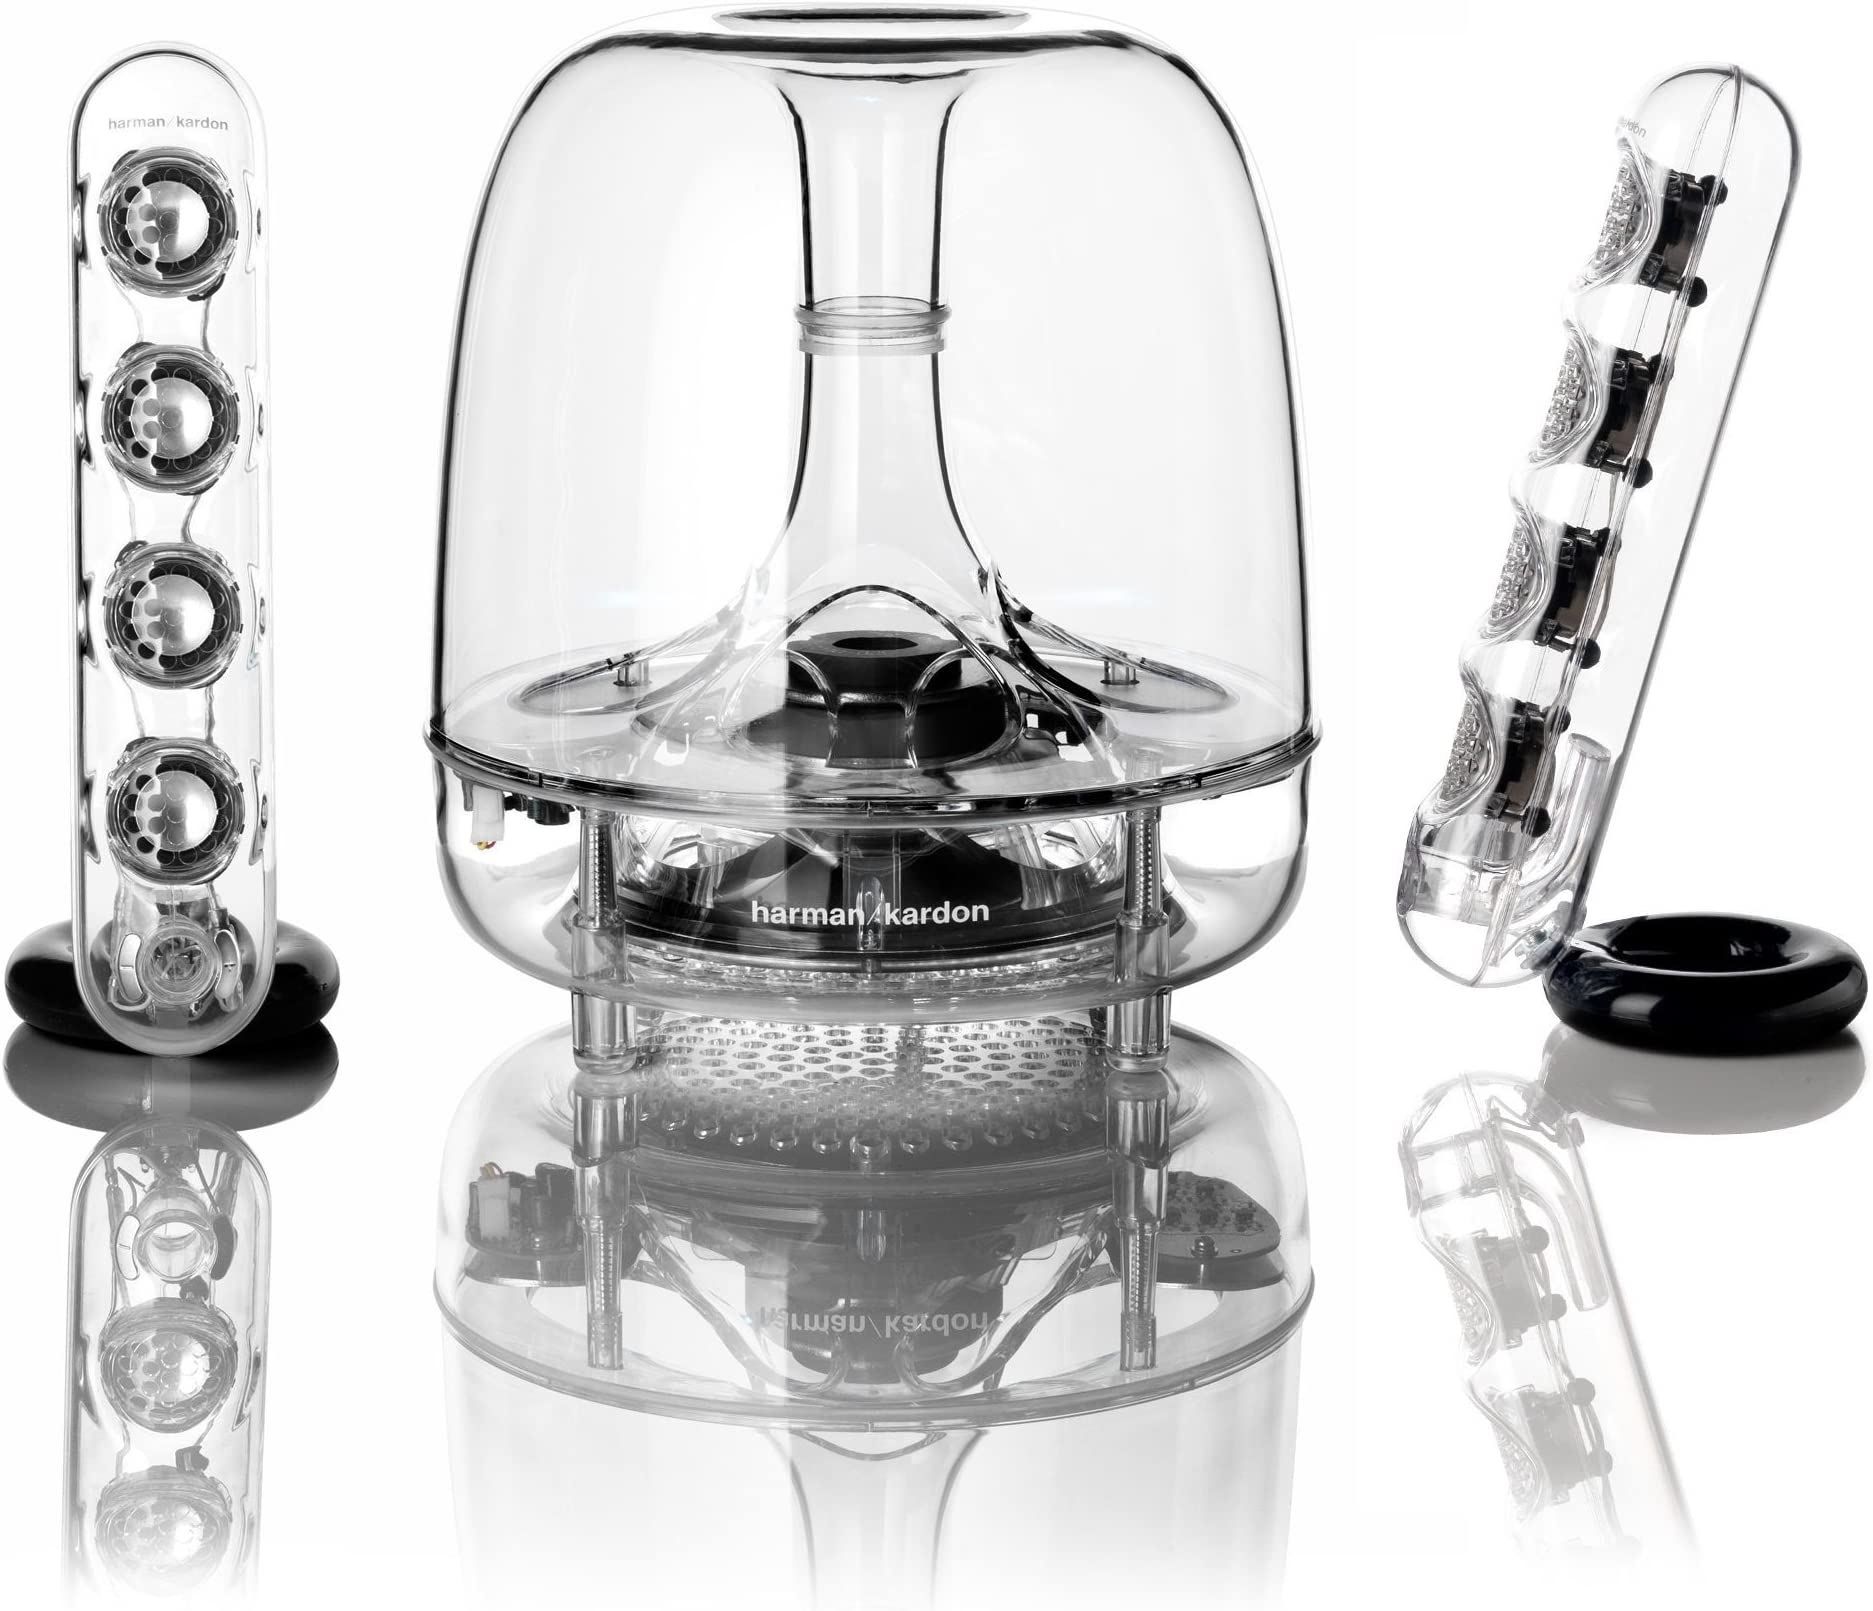 Harman Kardon SoundSticks III 2.1 Speaker System